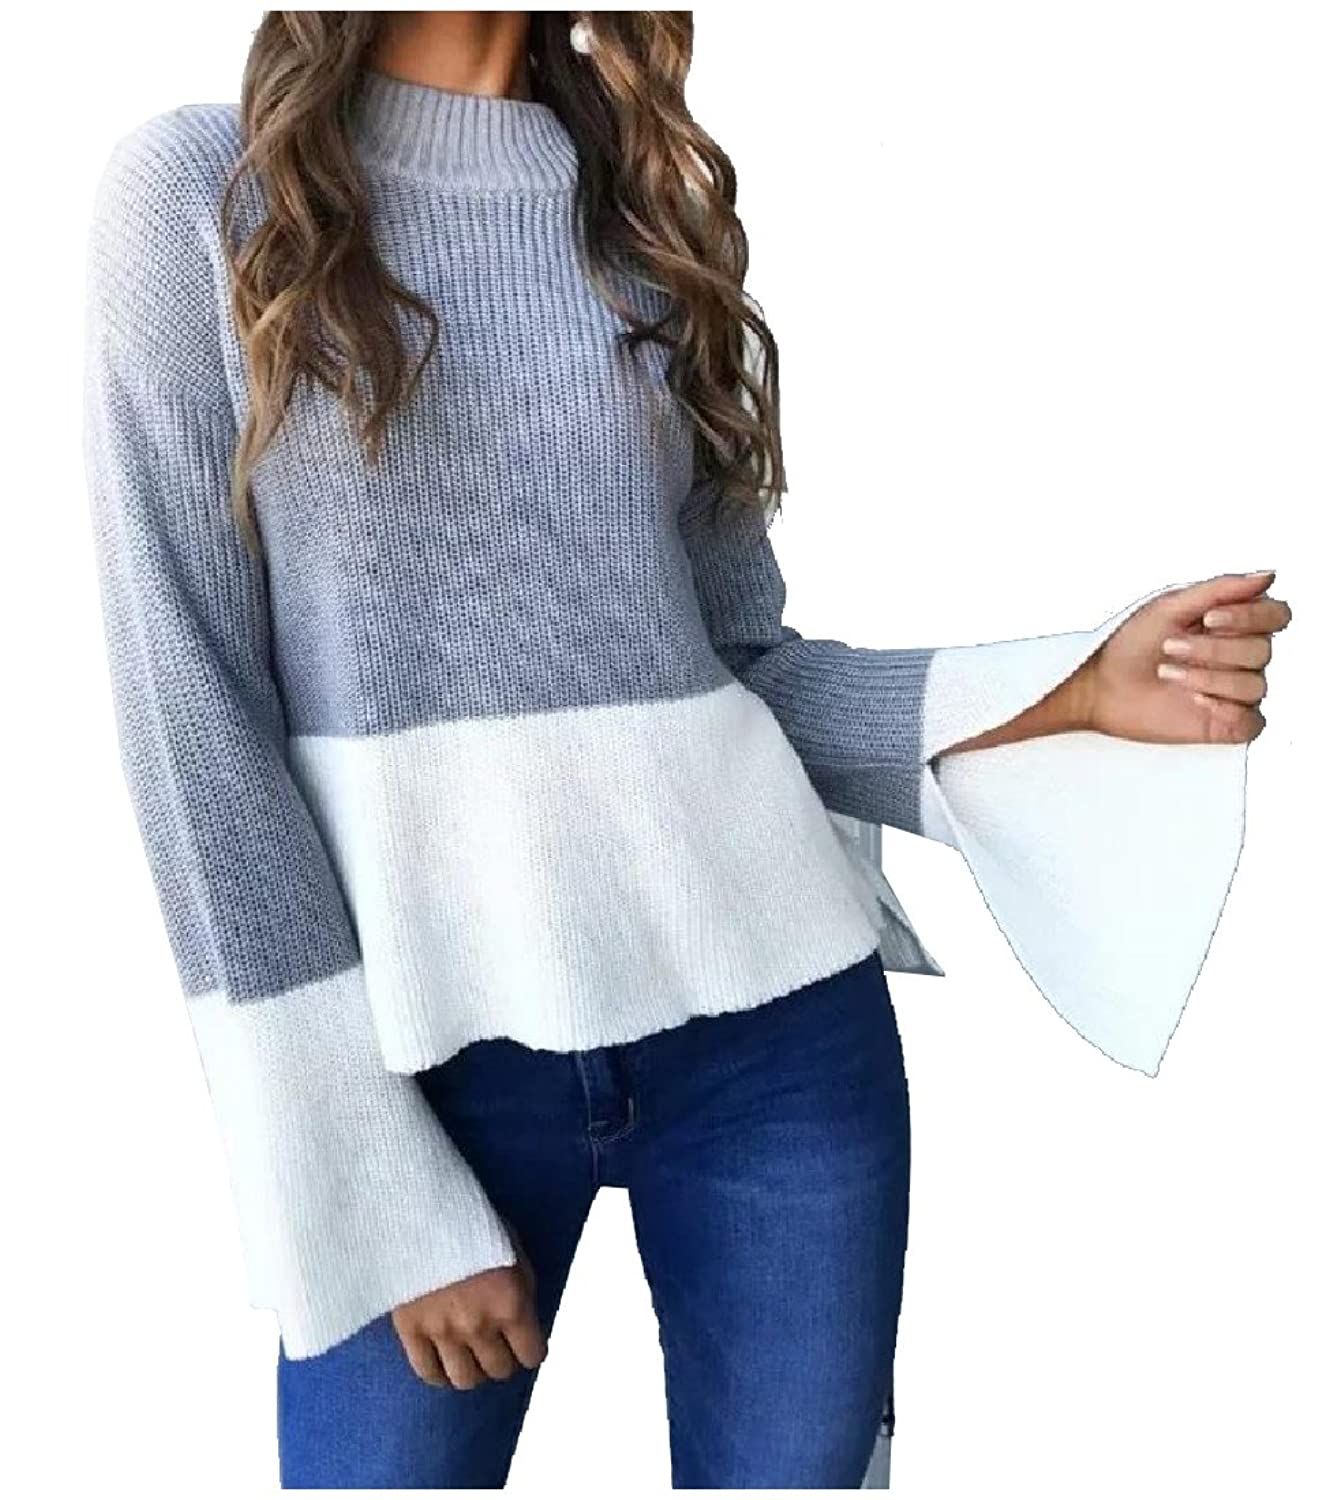 XiaoShop Women Autumn Comfy Long Flared Sleeve Knit Pullover Sweaters